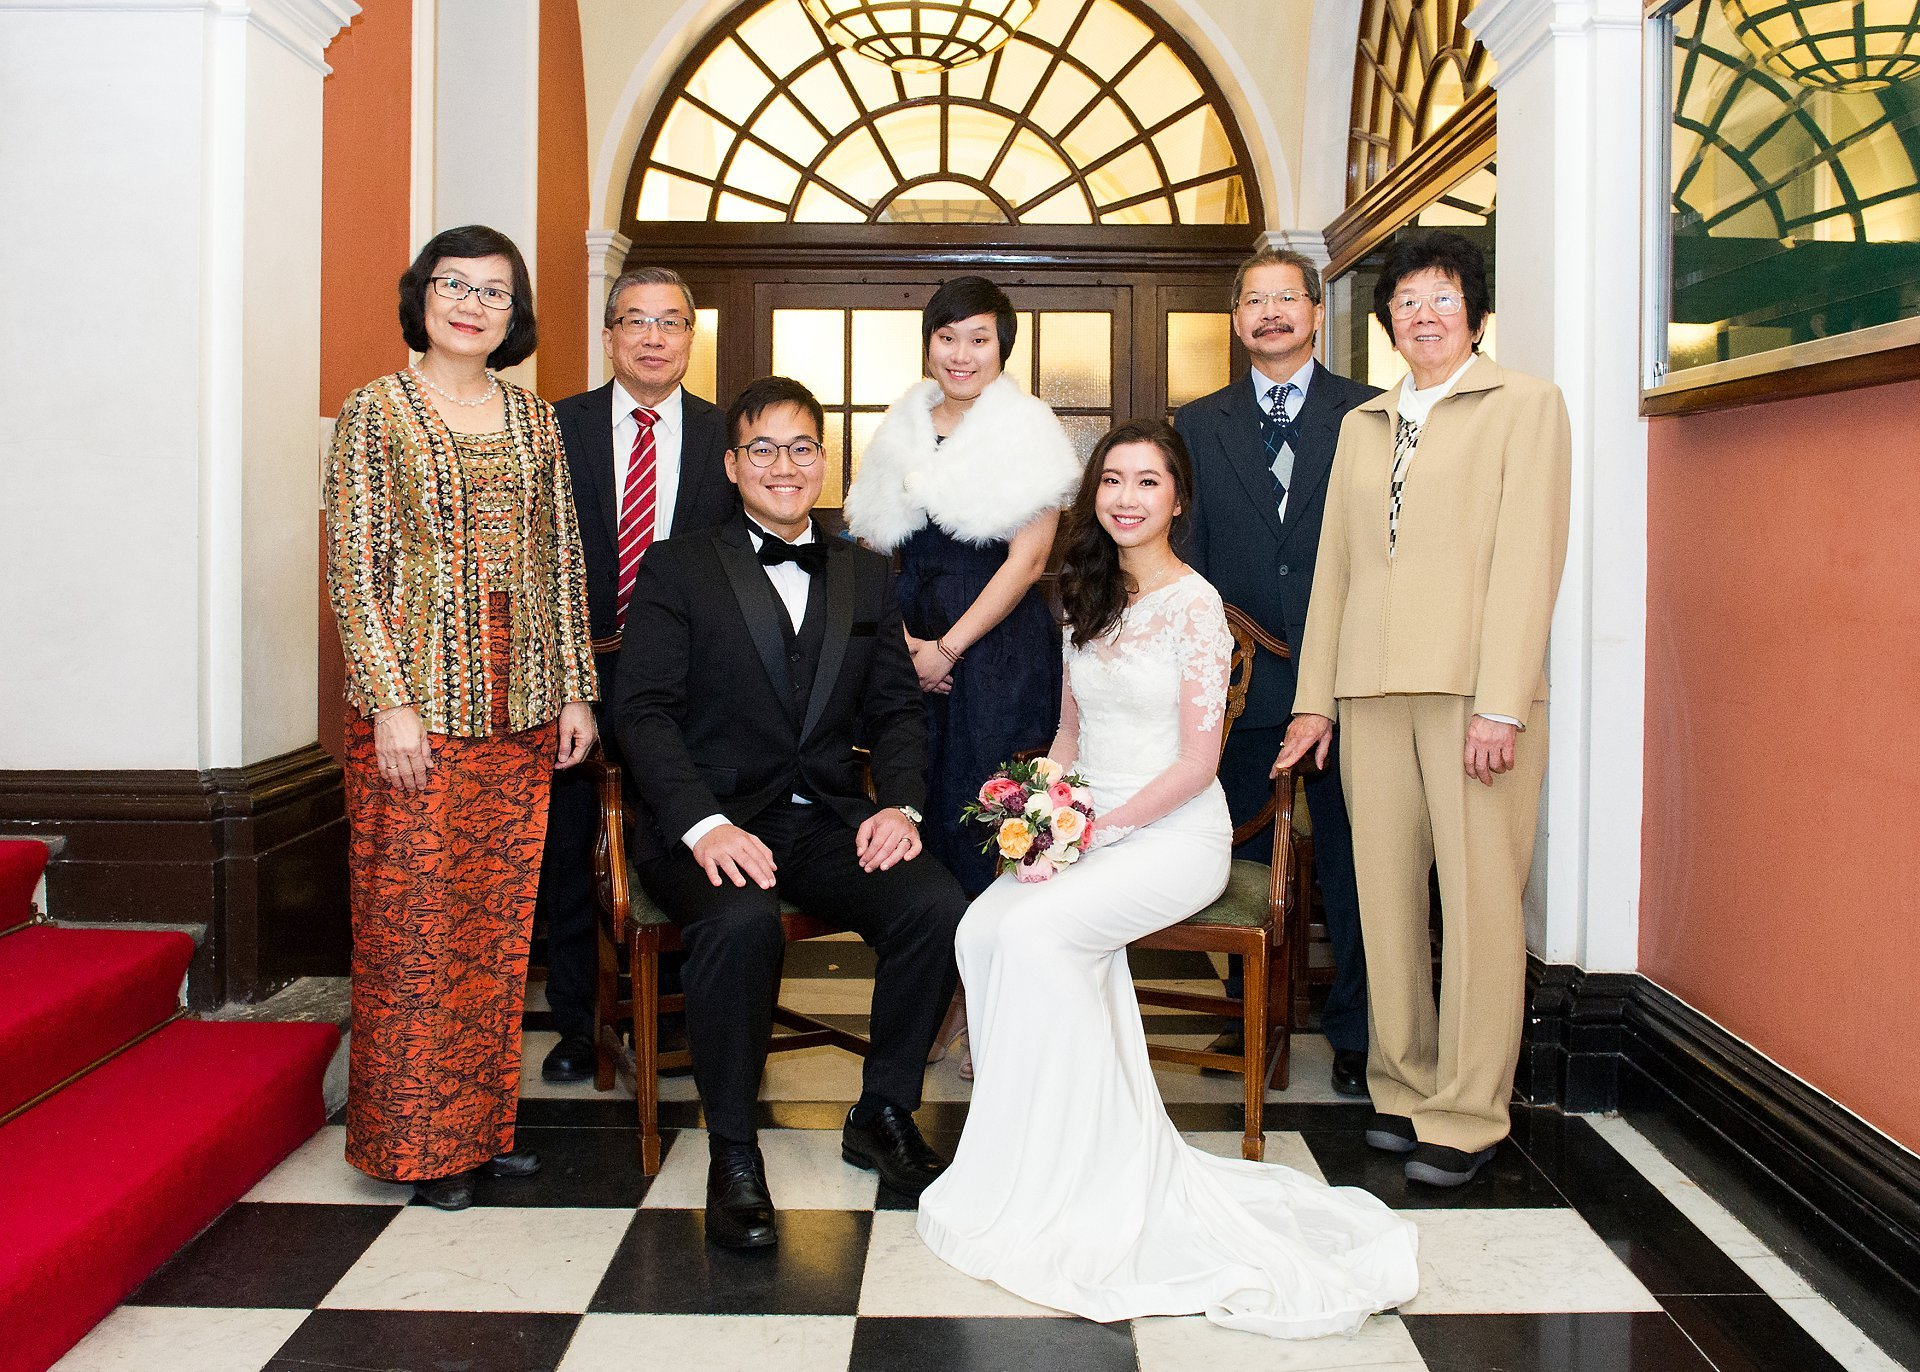 Rossetti Room Christmas wedding group photographs in waiting area due to cold and rain